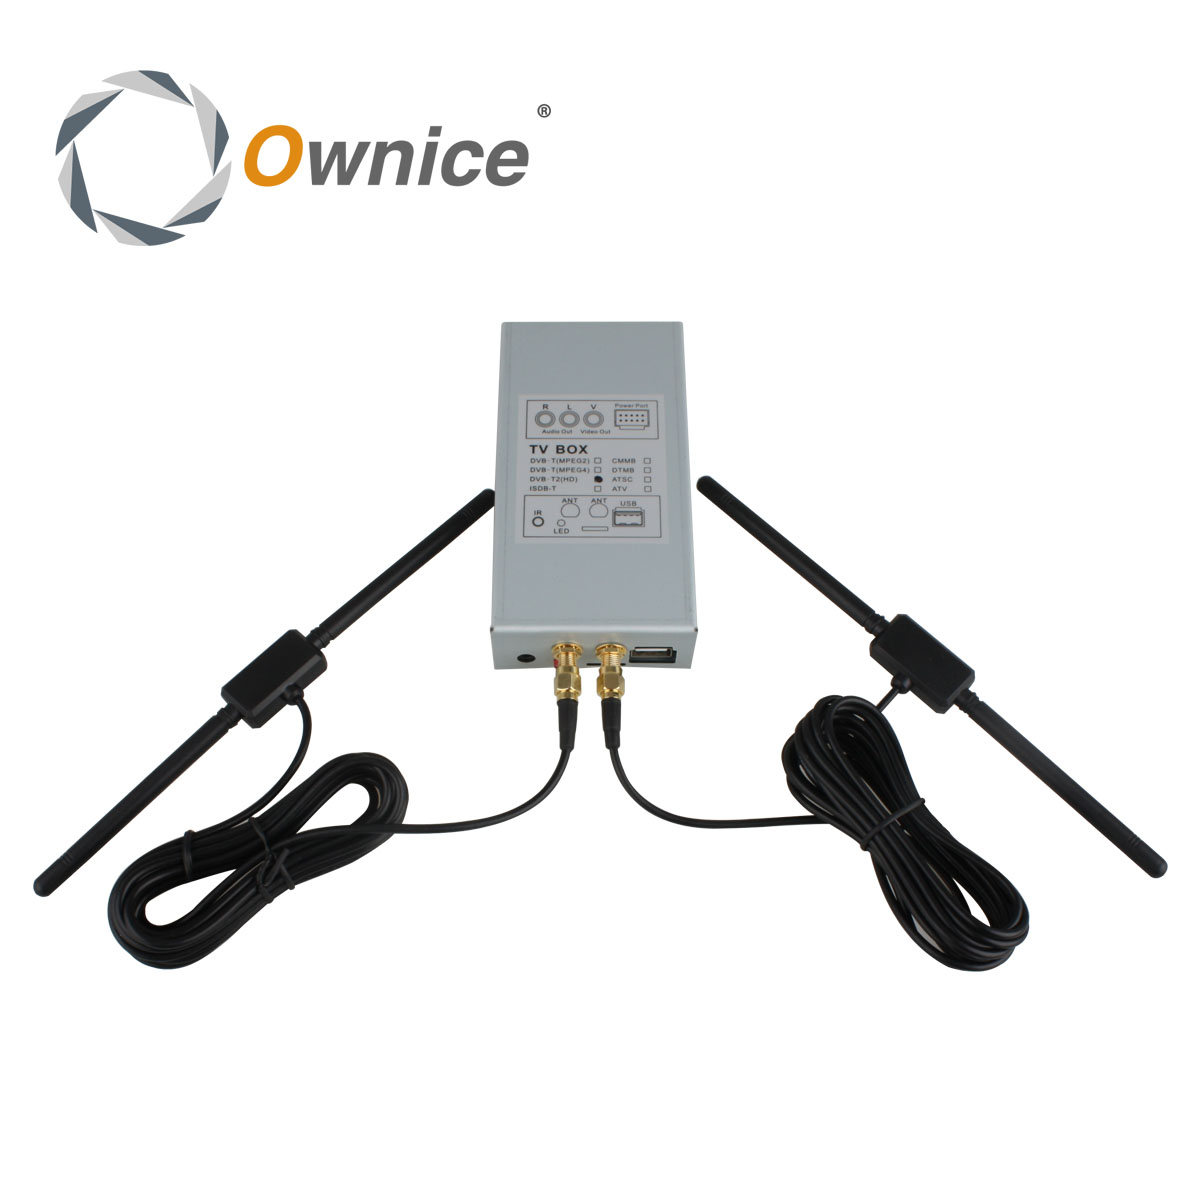 For Russia Thailand Malaysia DVB-T2 TV Box For Ownice Car DVD Player.The Item Just Fit For our Car DVD special dvb t mpeg4 tv box tuners for ownice car dvd player the item just for our dvd